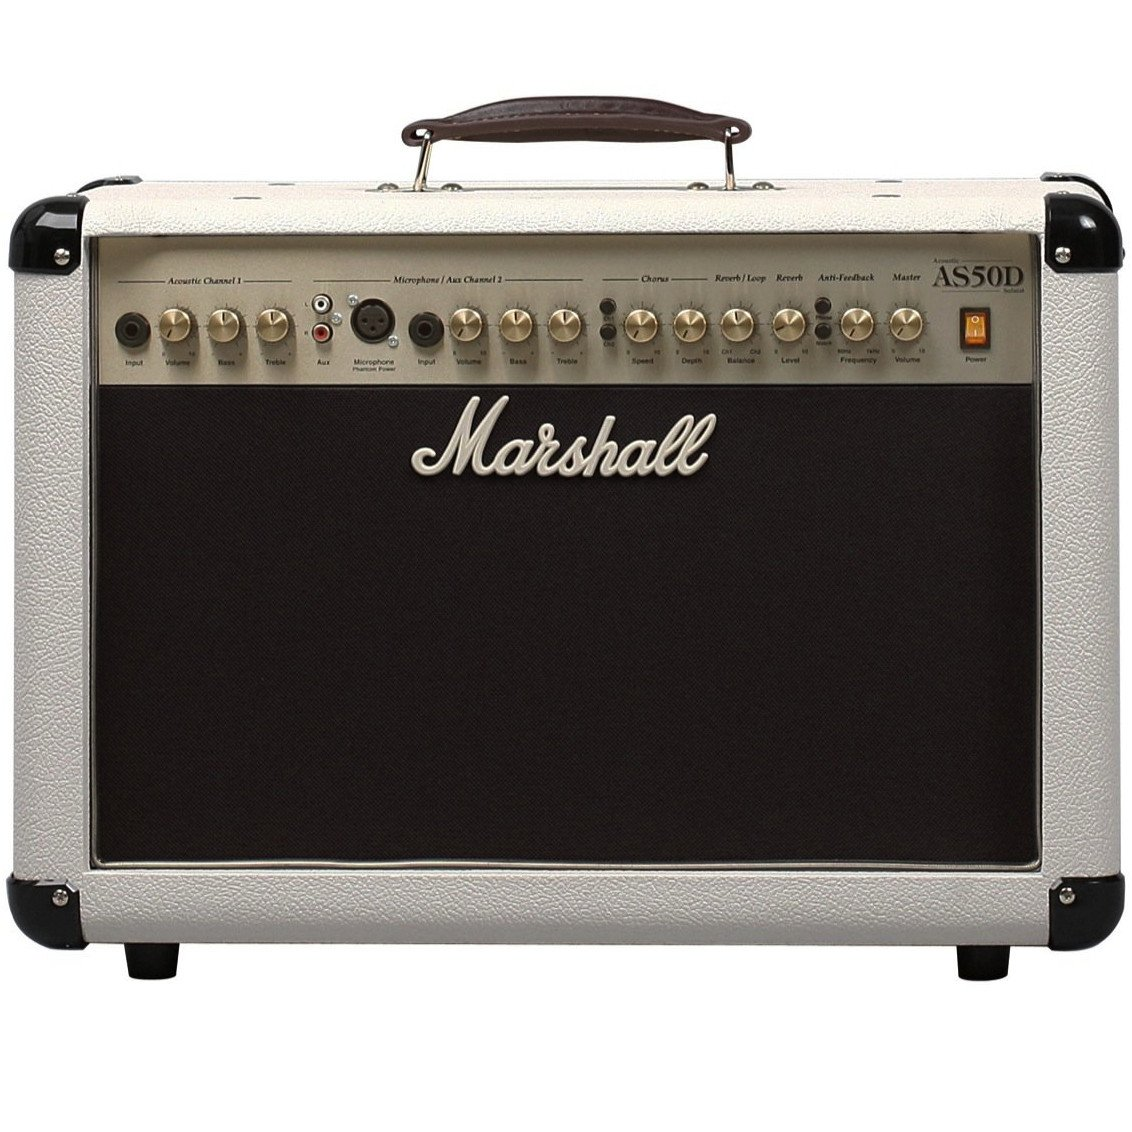 Marshall AS50D Cream ( Limited Edition )